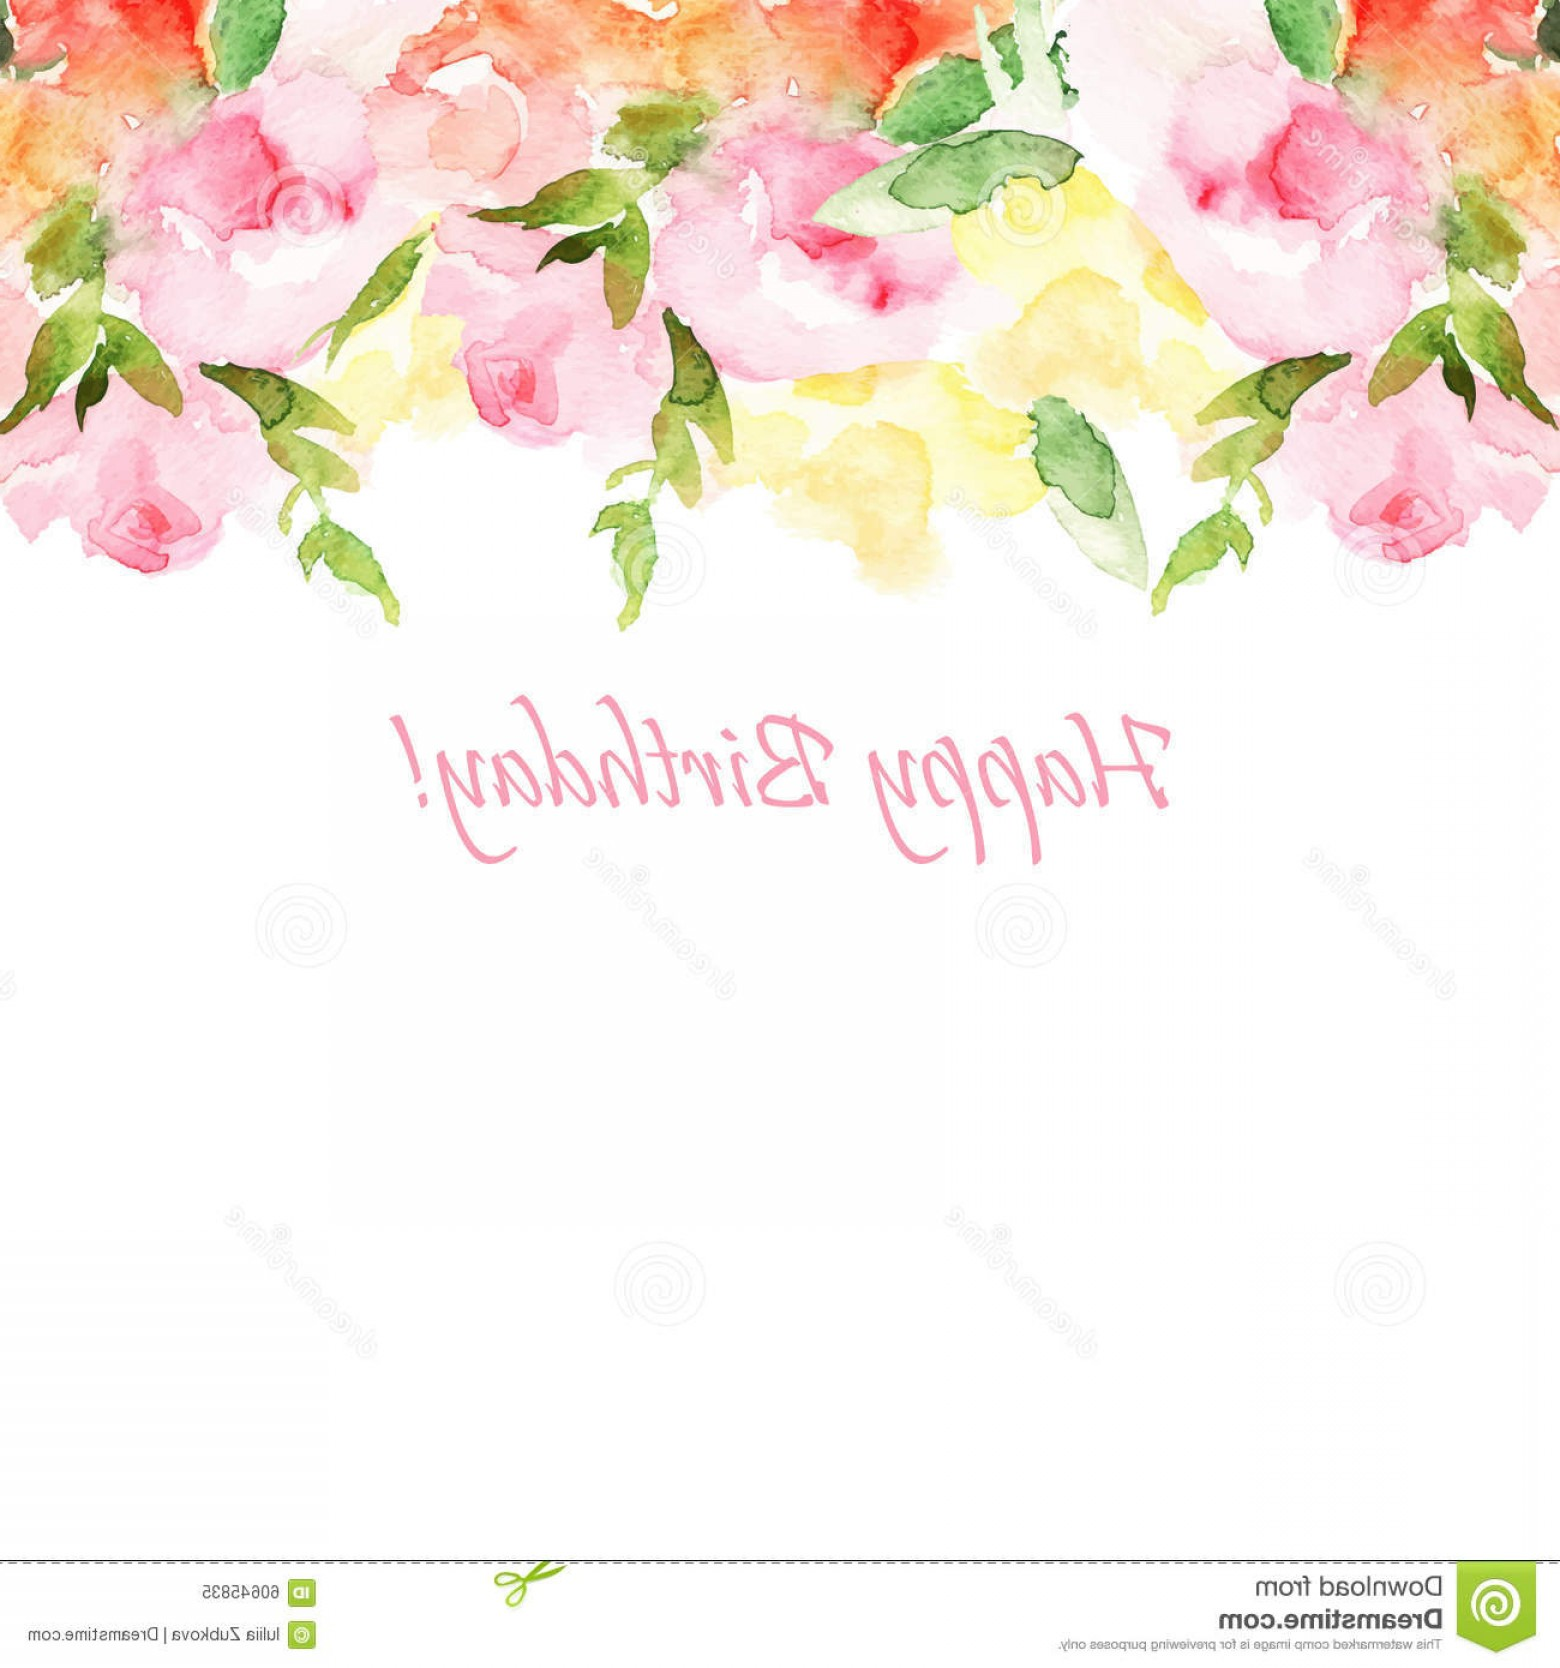 Watercolor Floral Background Vector: Stock Illustration Vector Floral Illustration Greeting Card Invitation Banner Frame Your Text Watercolor Background Image